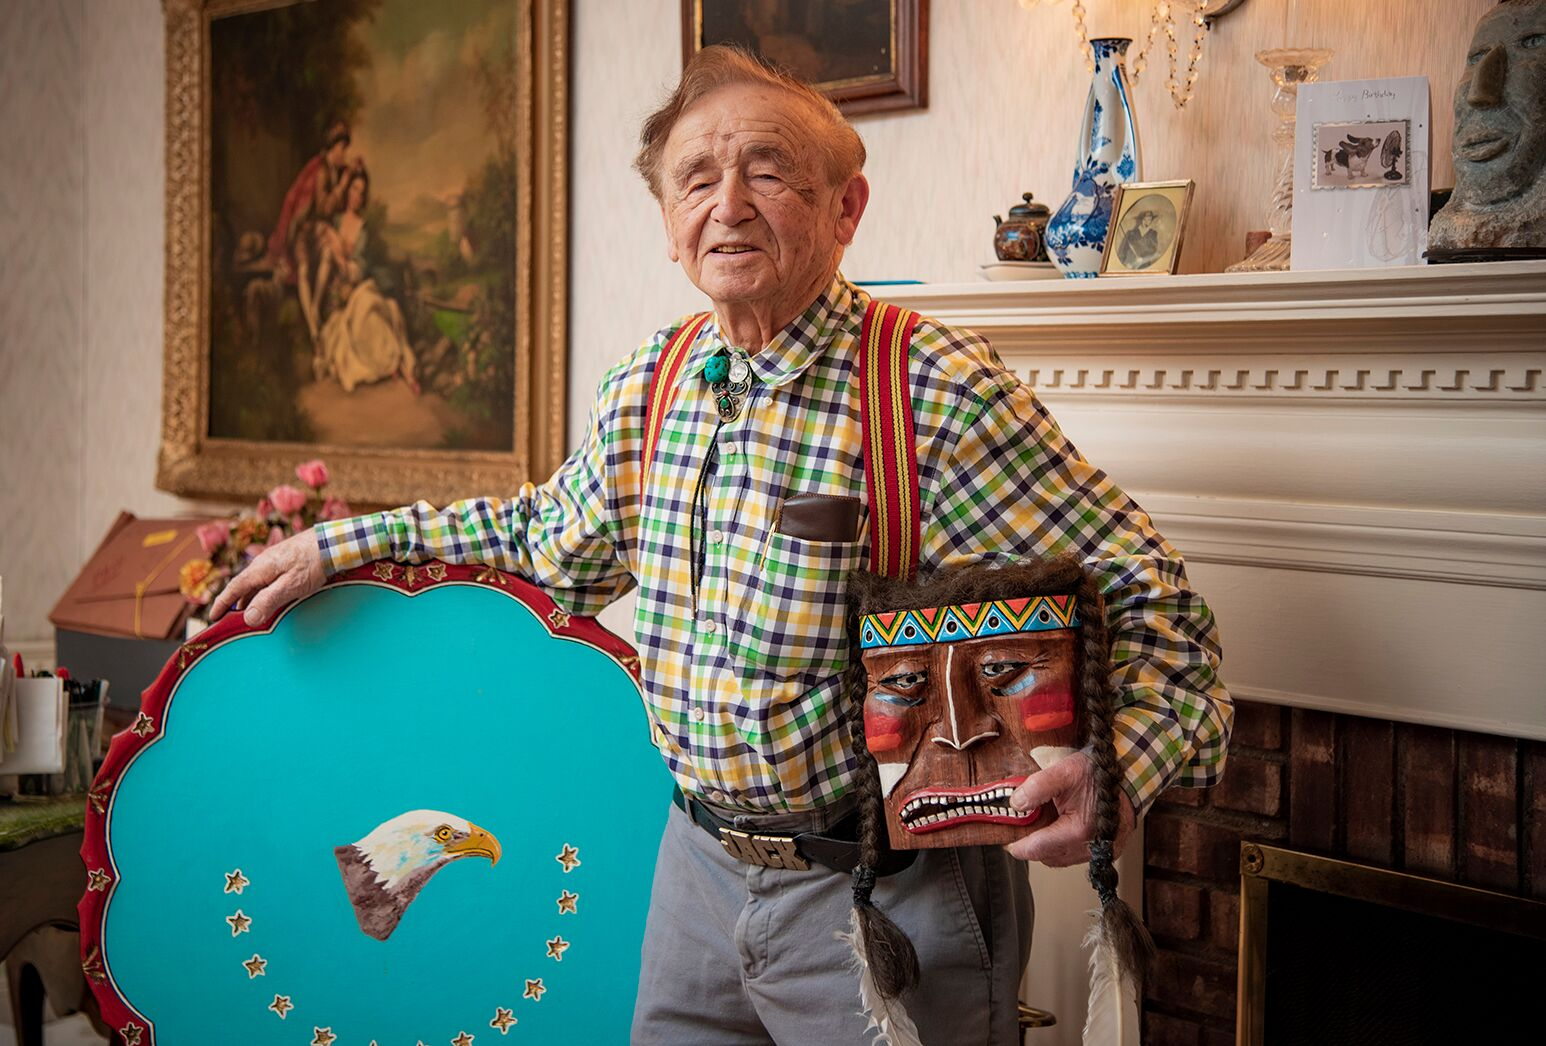 Man in his home poses with colorful art.